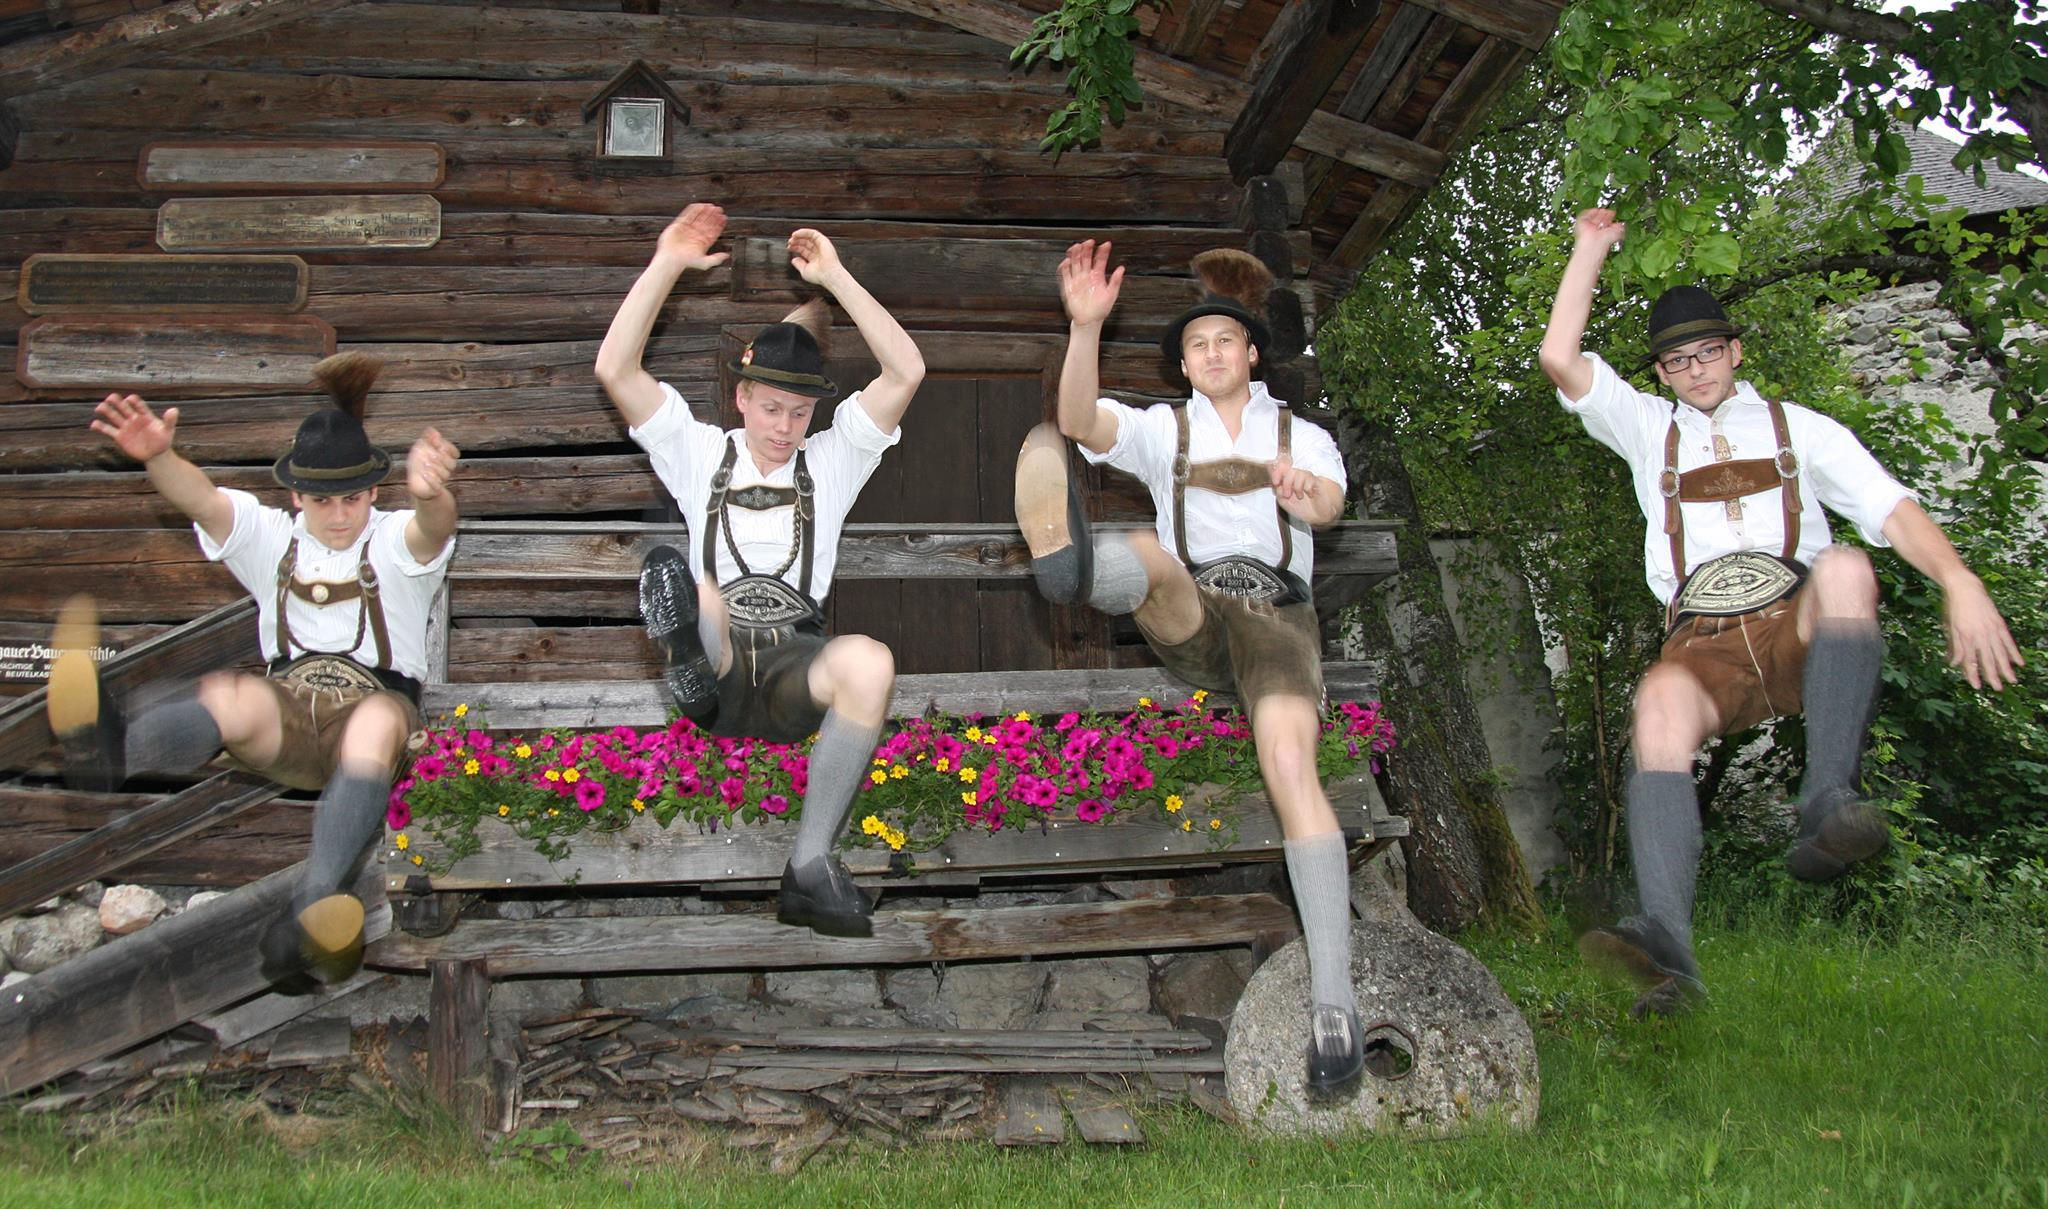 Traditional evening at the castle Kaprun - 02/07/2019, from 8:00 PM